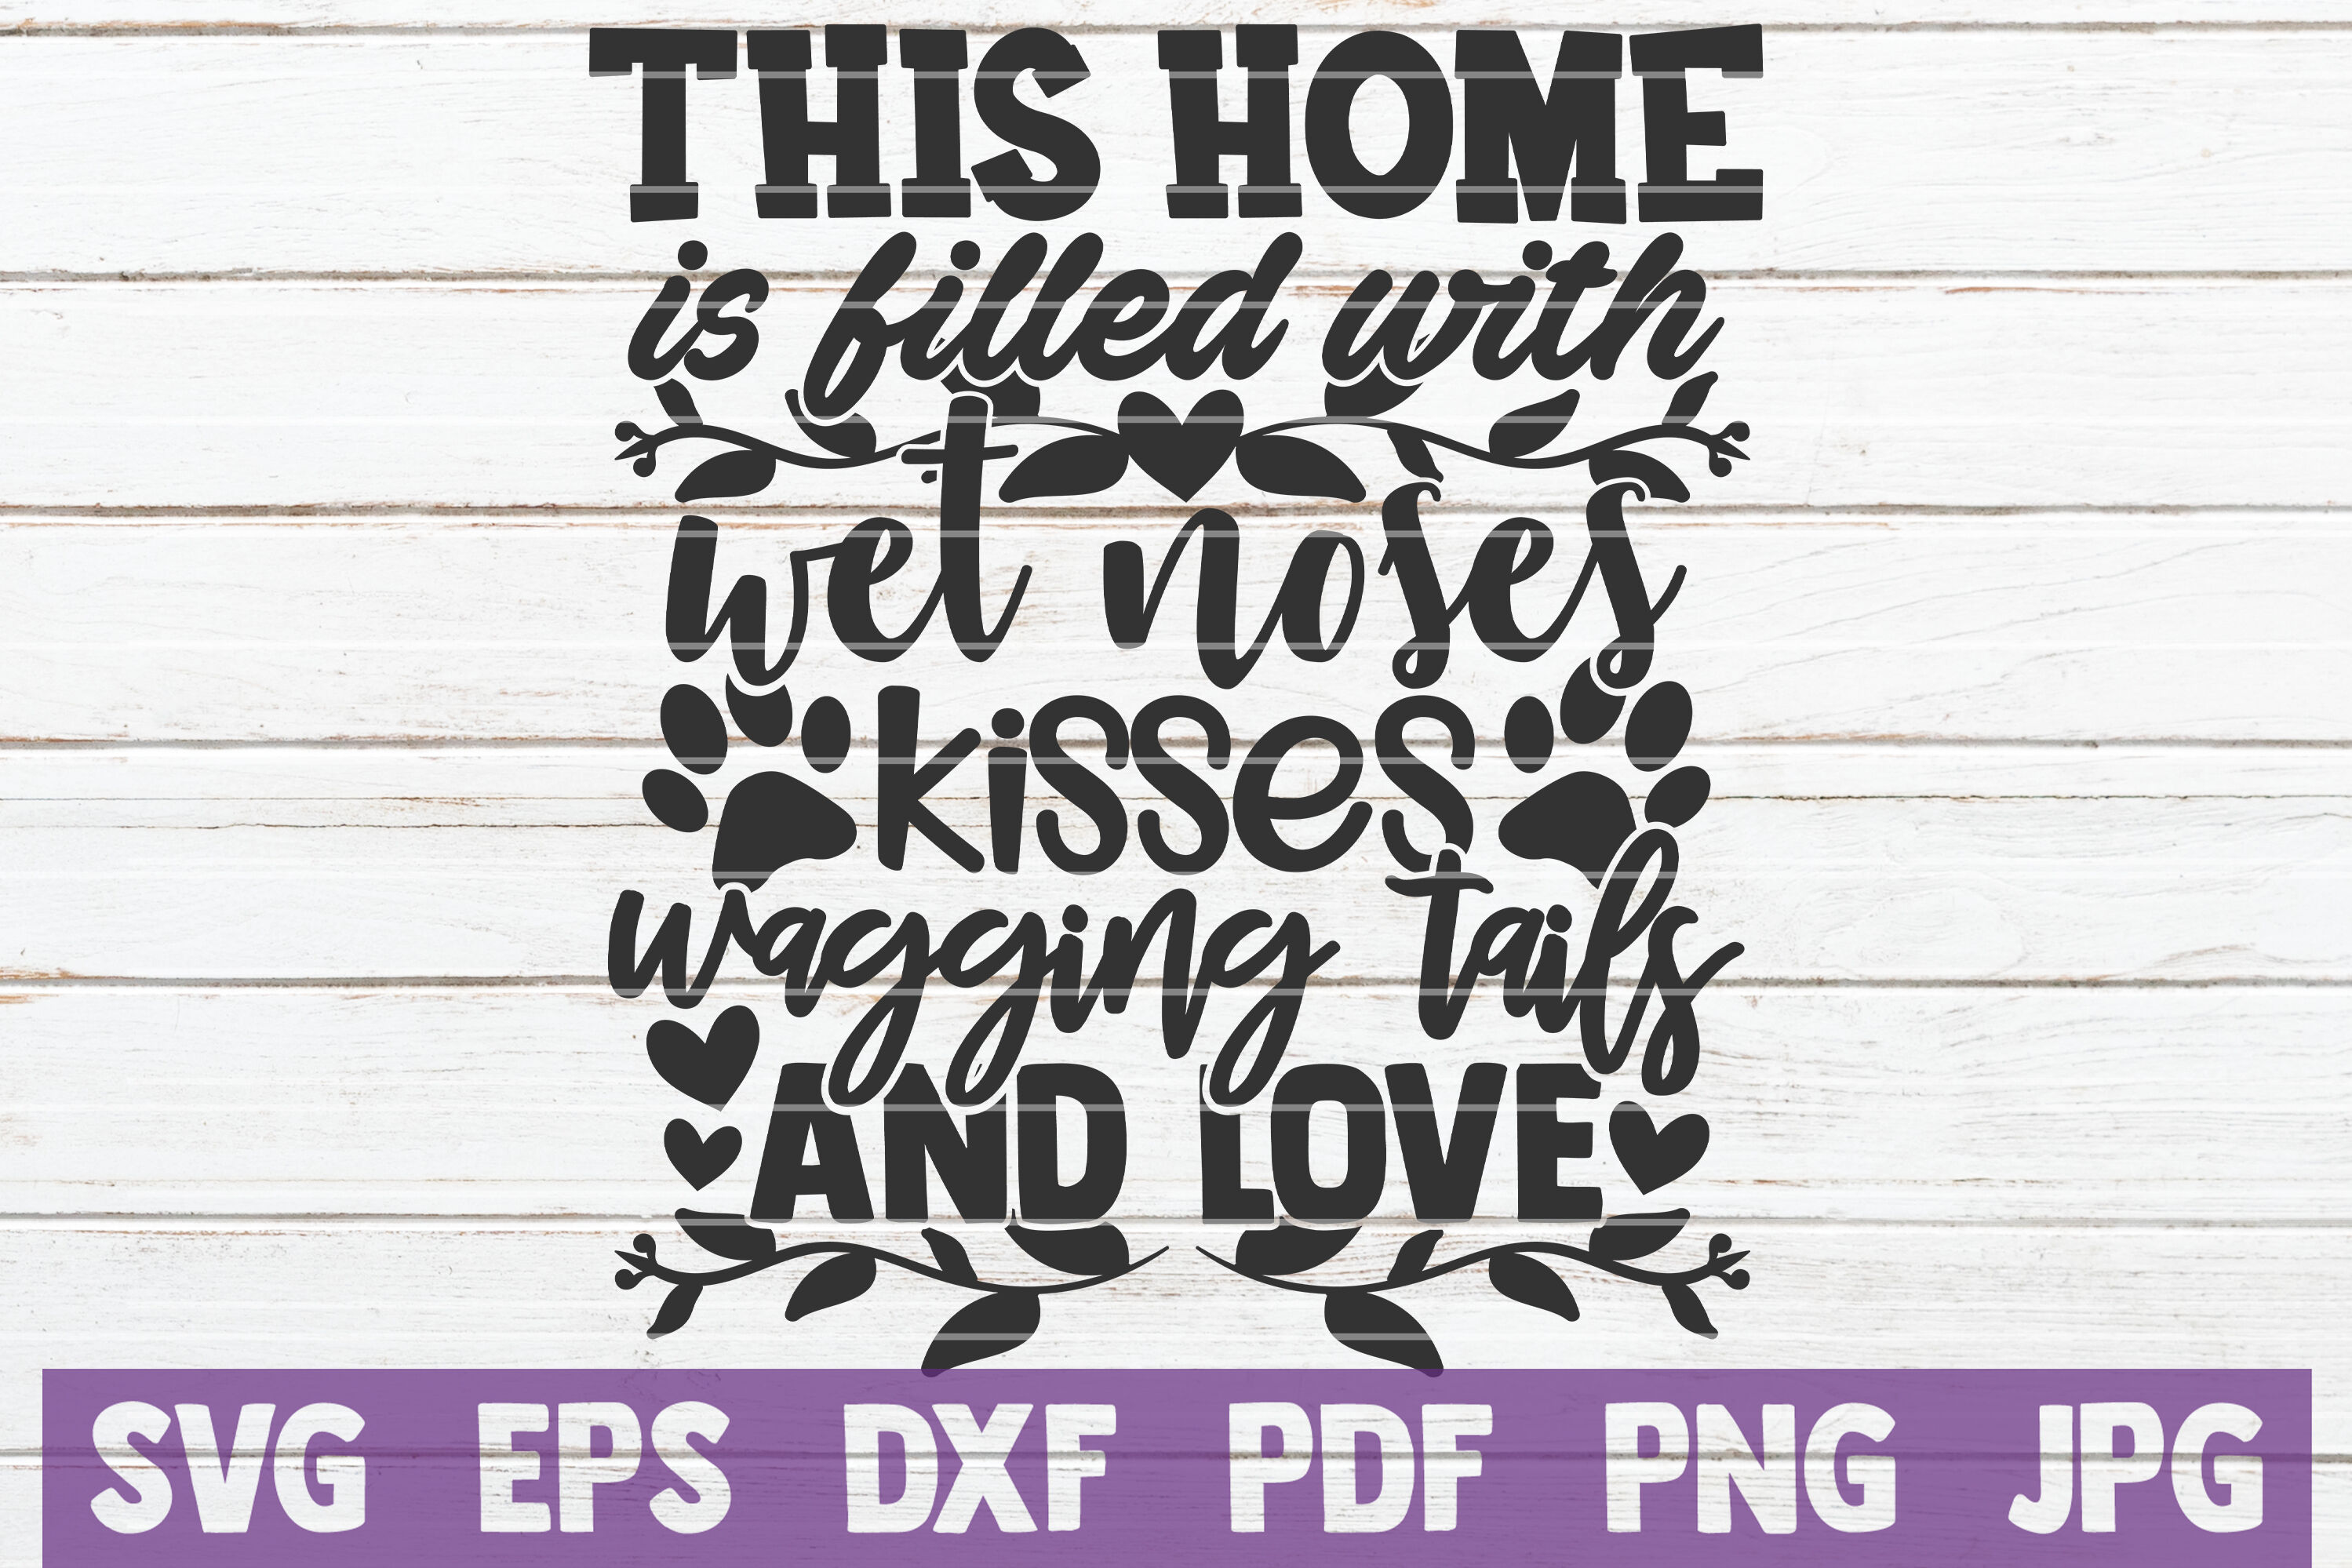 This Home Is Filled With Wet Noses Kisses Wagging Tails And Love